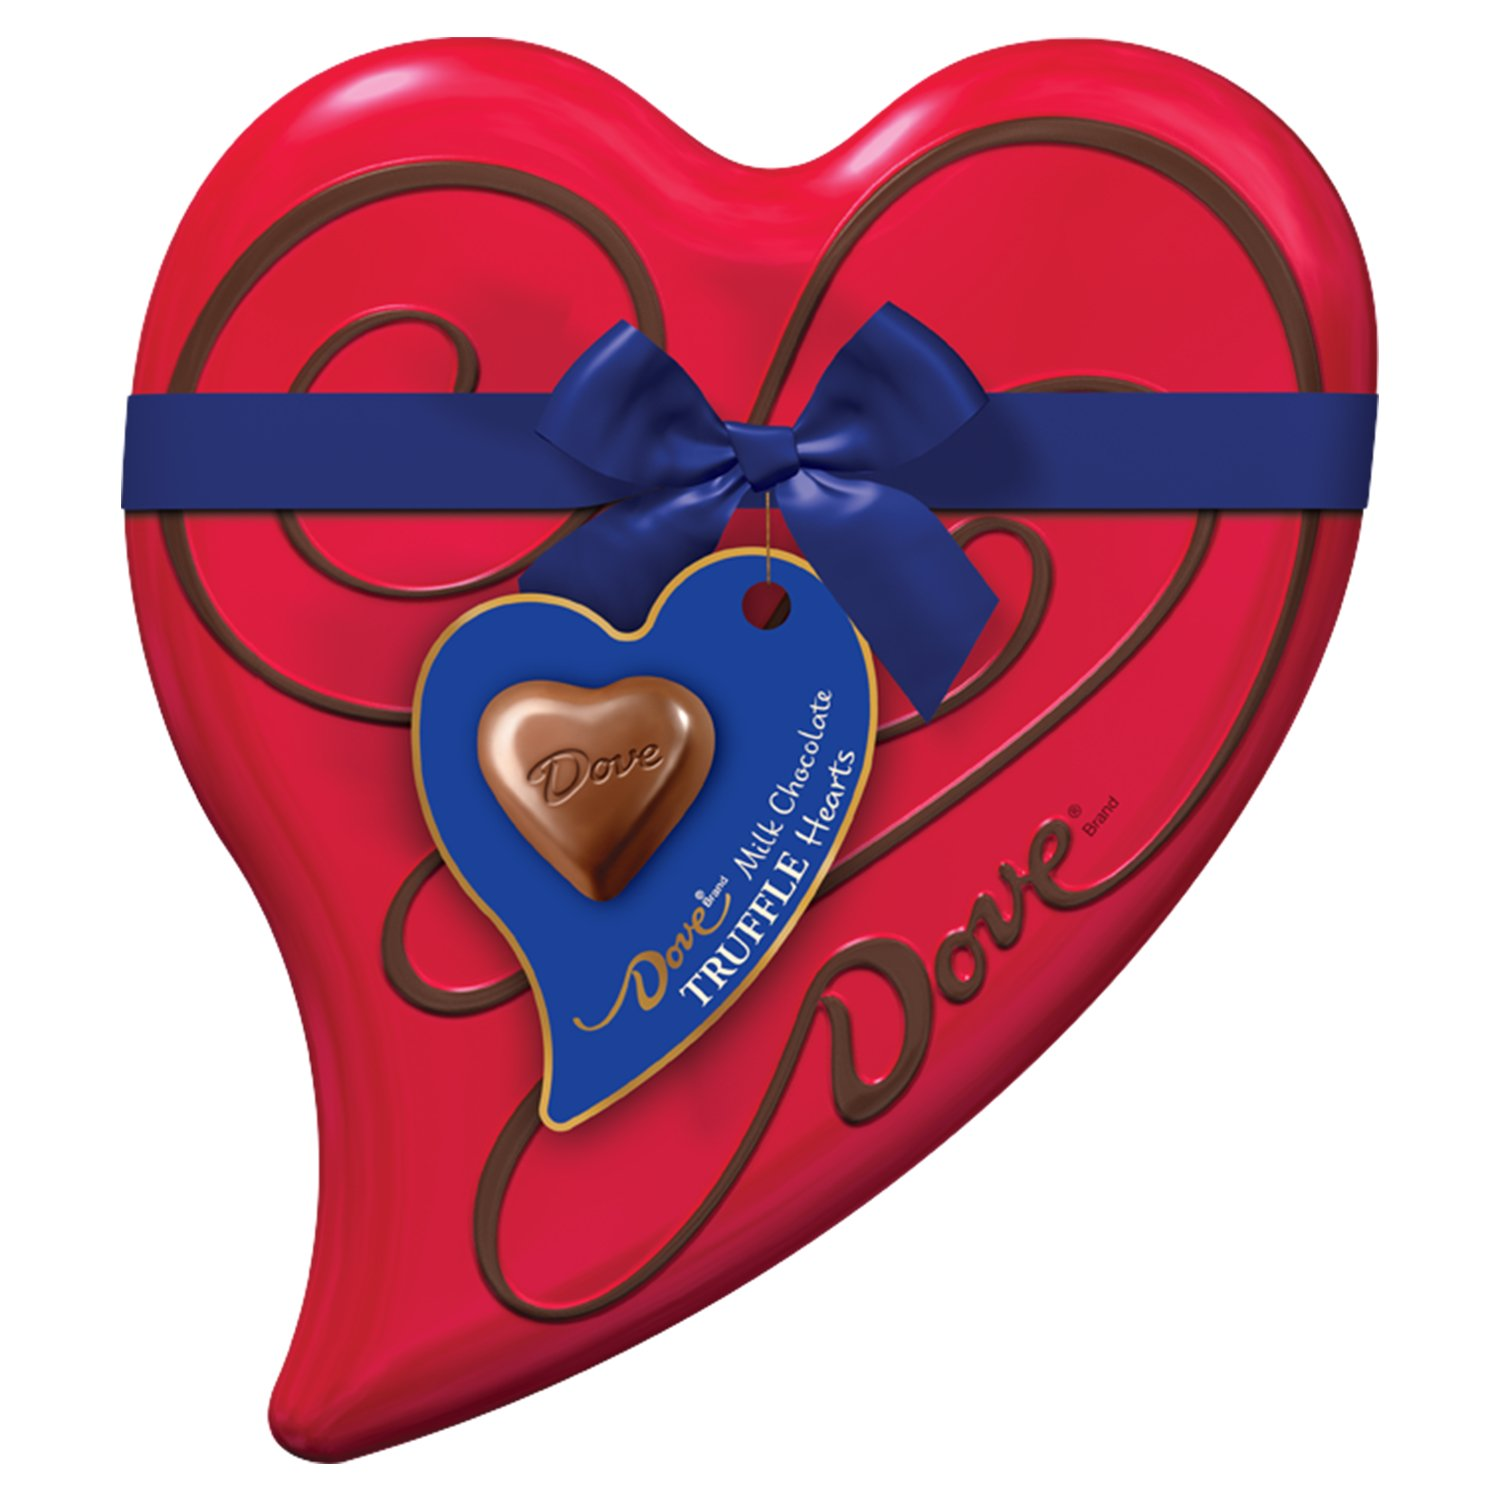 Amazon.com : DOVE Valentine's Milk Chocolate Truffles Heart Gift ...